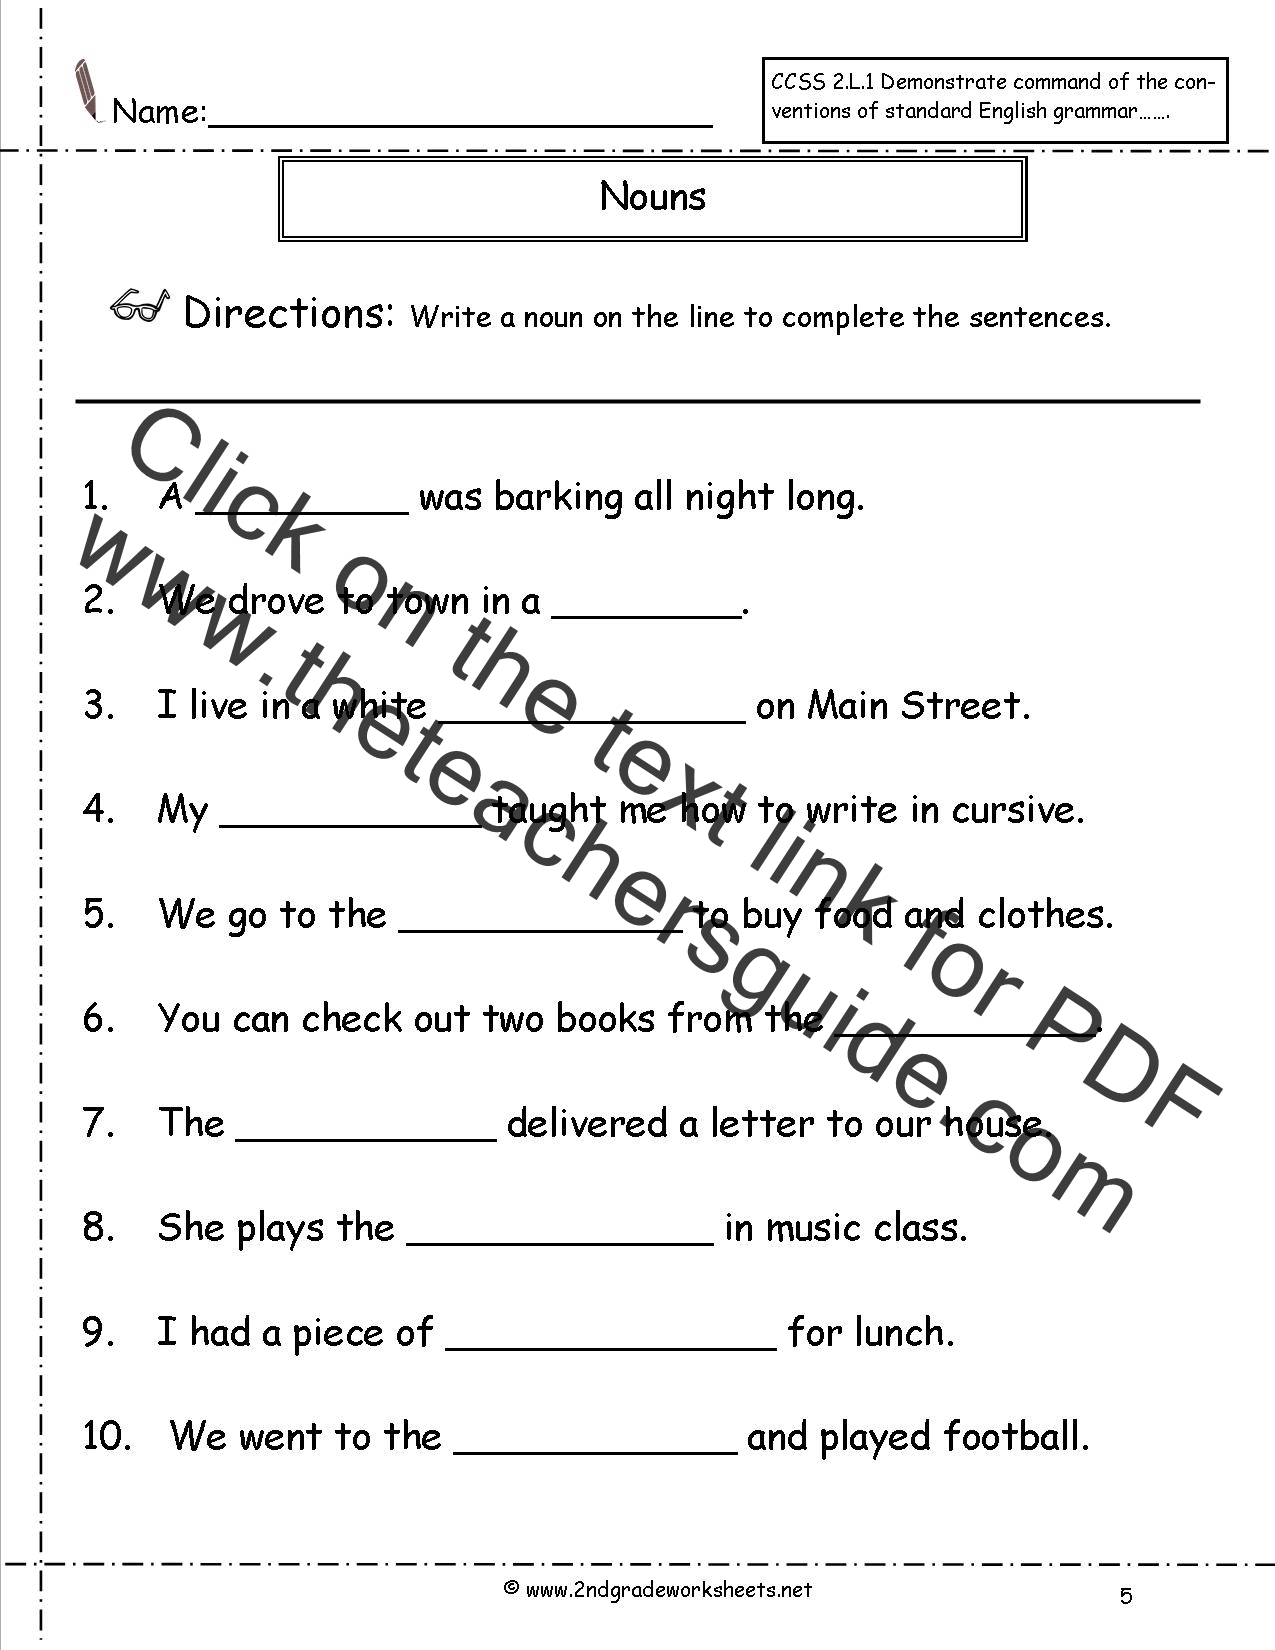 Printables Grammar Worksheets 2nd Grade nouns worksheets and printouts worksheet